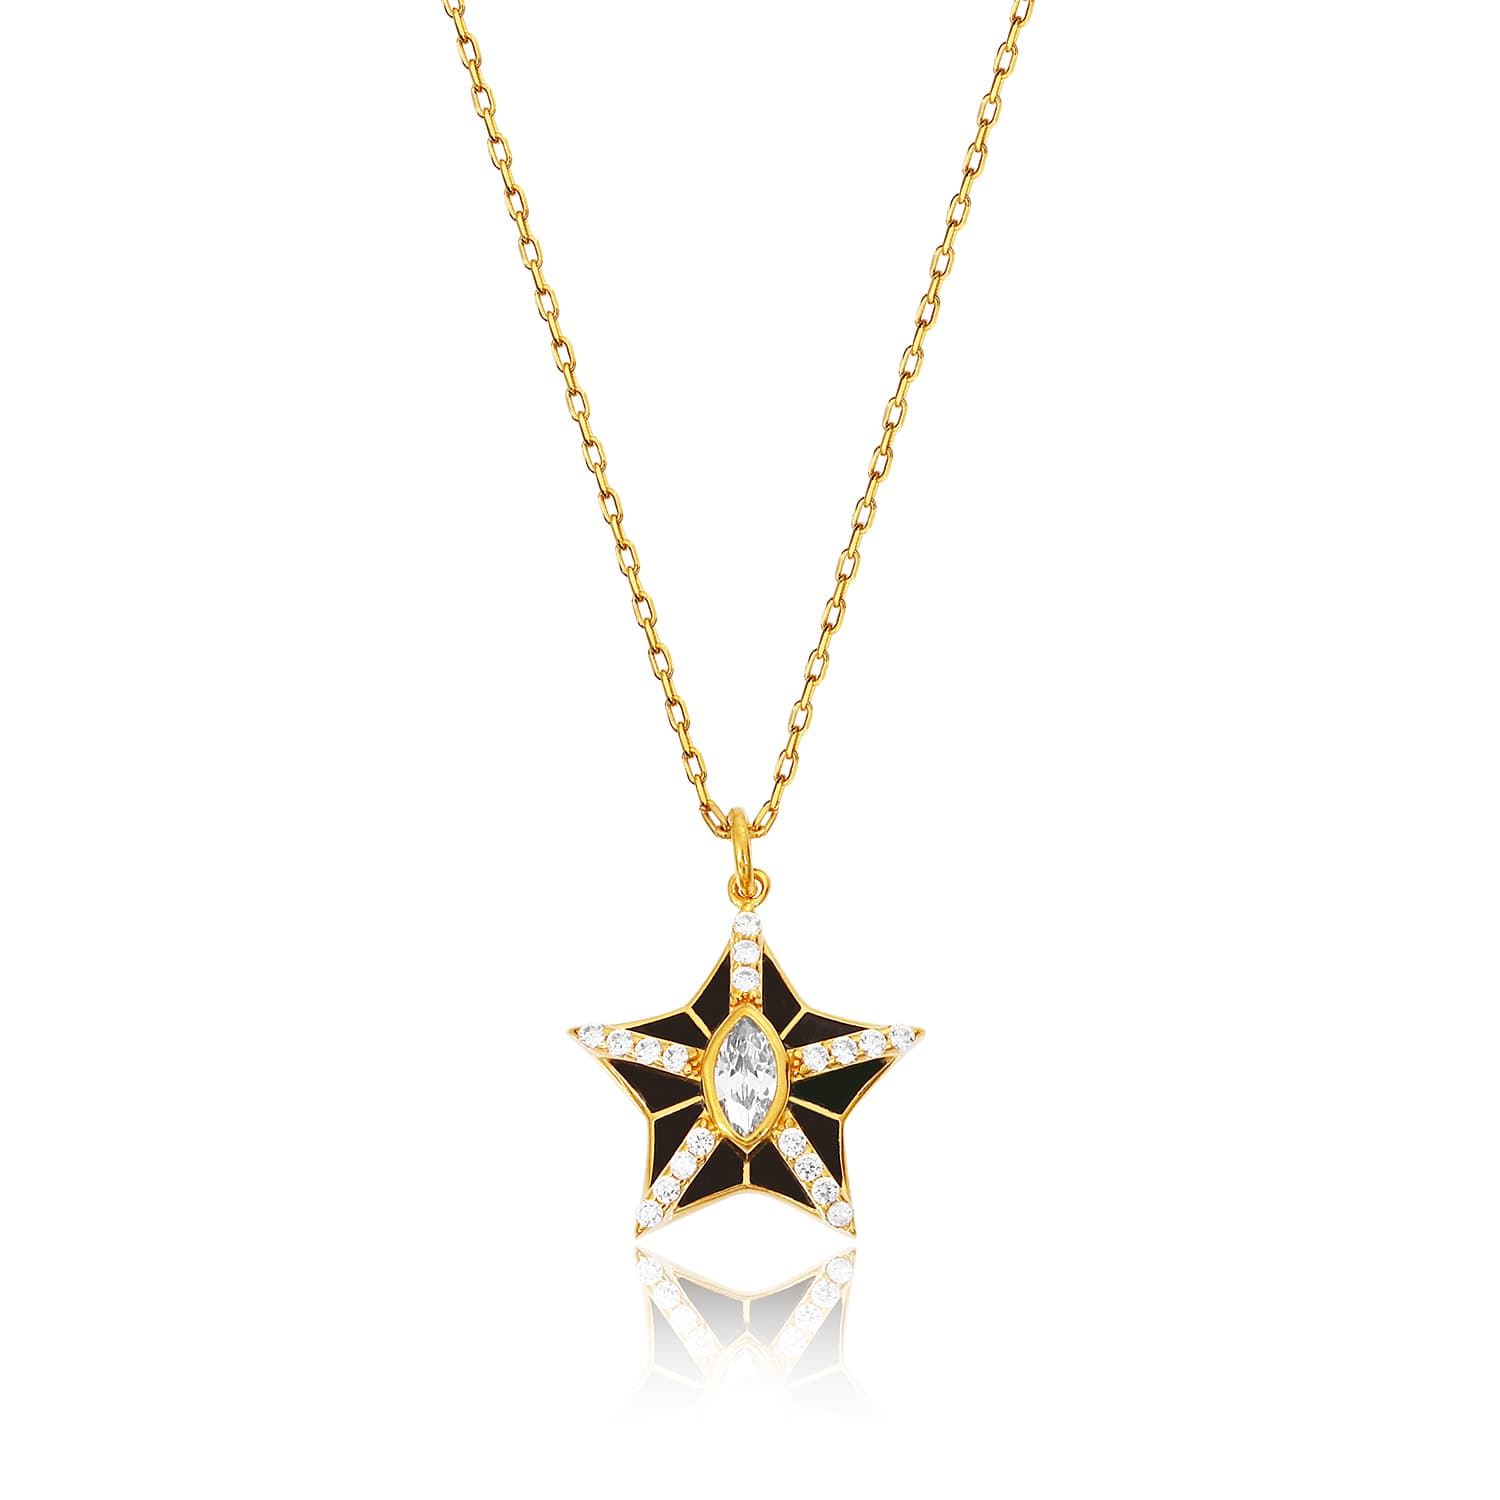 24k real gold plated enamel necklace on silver